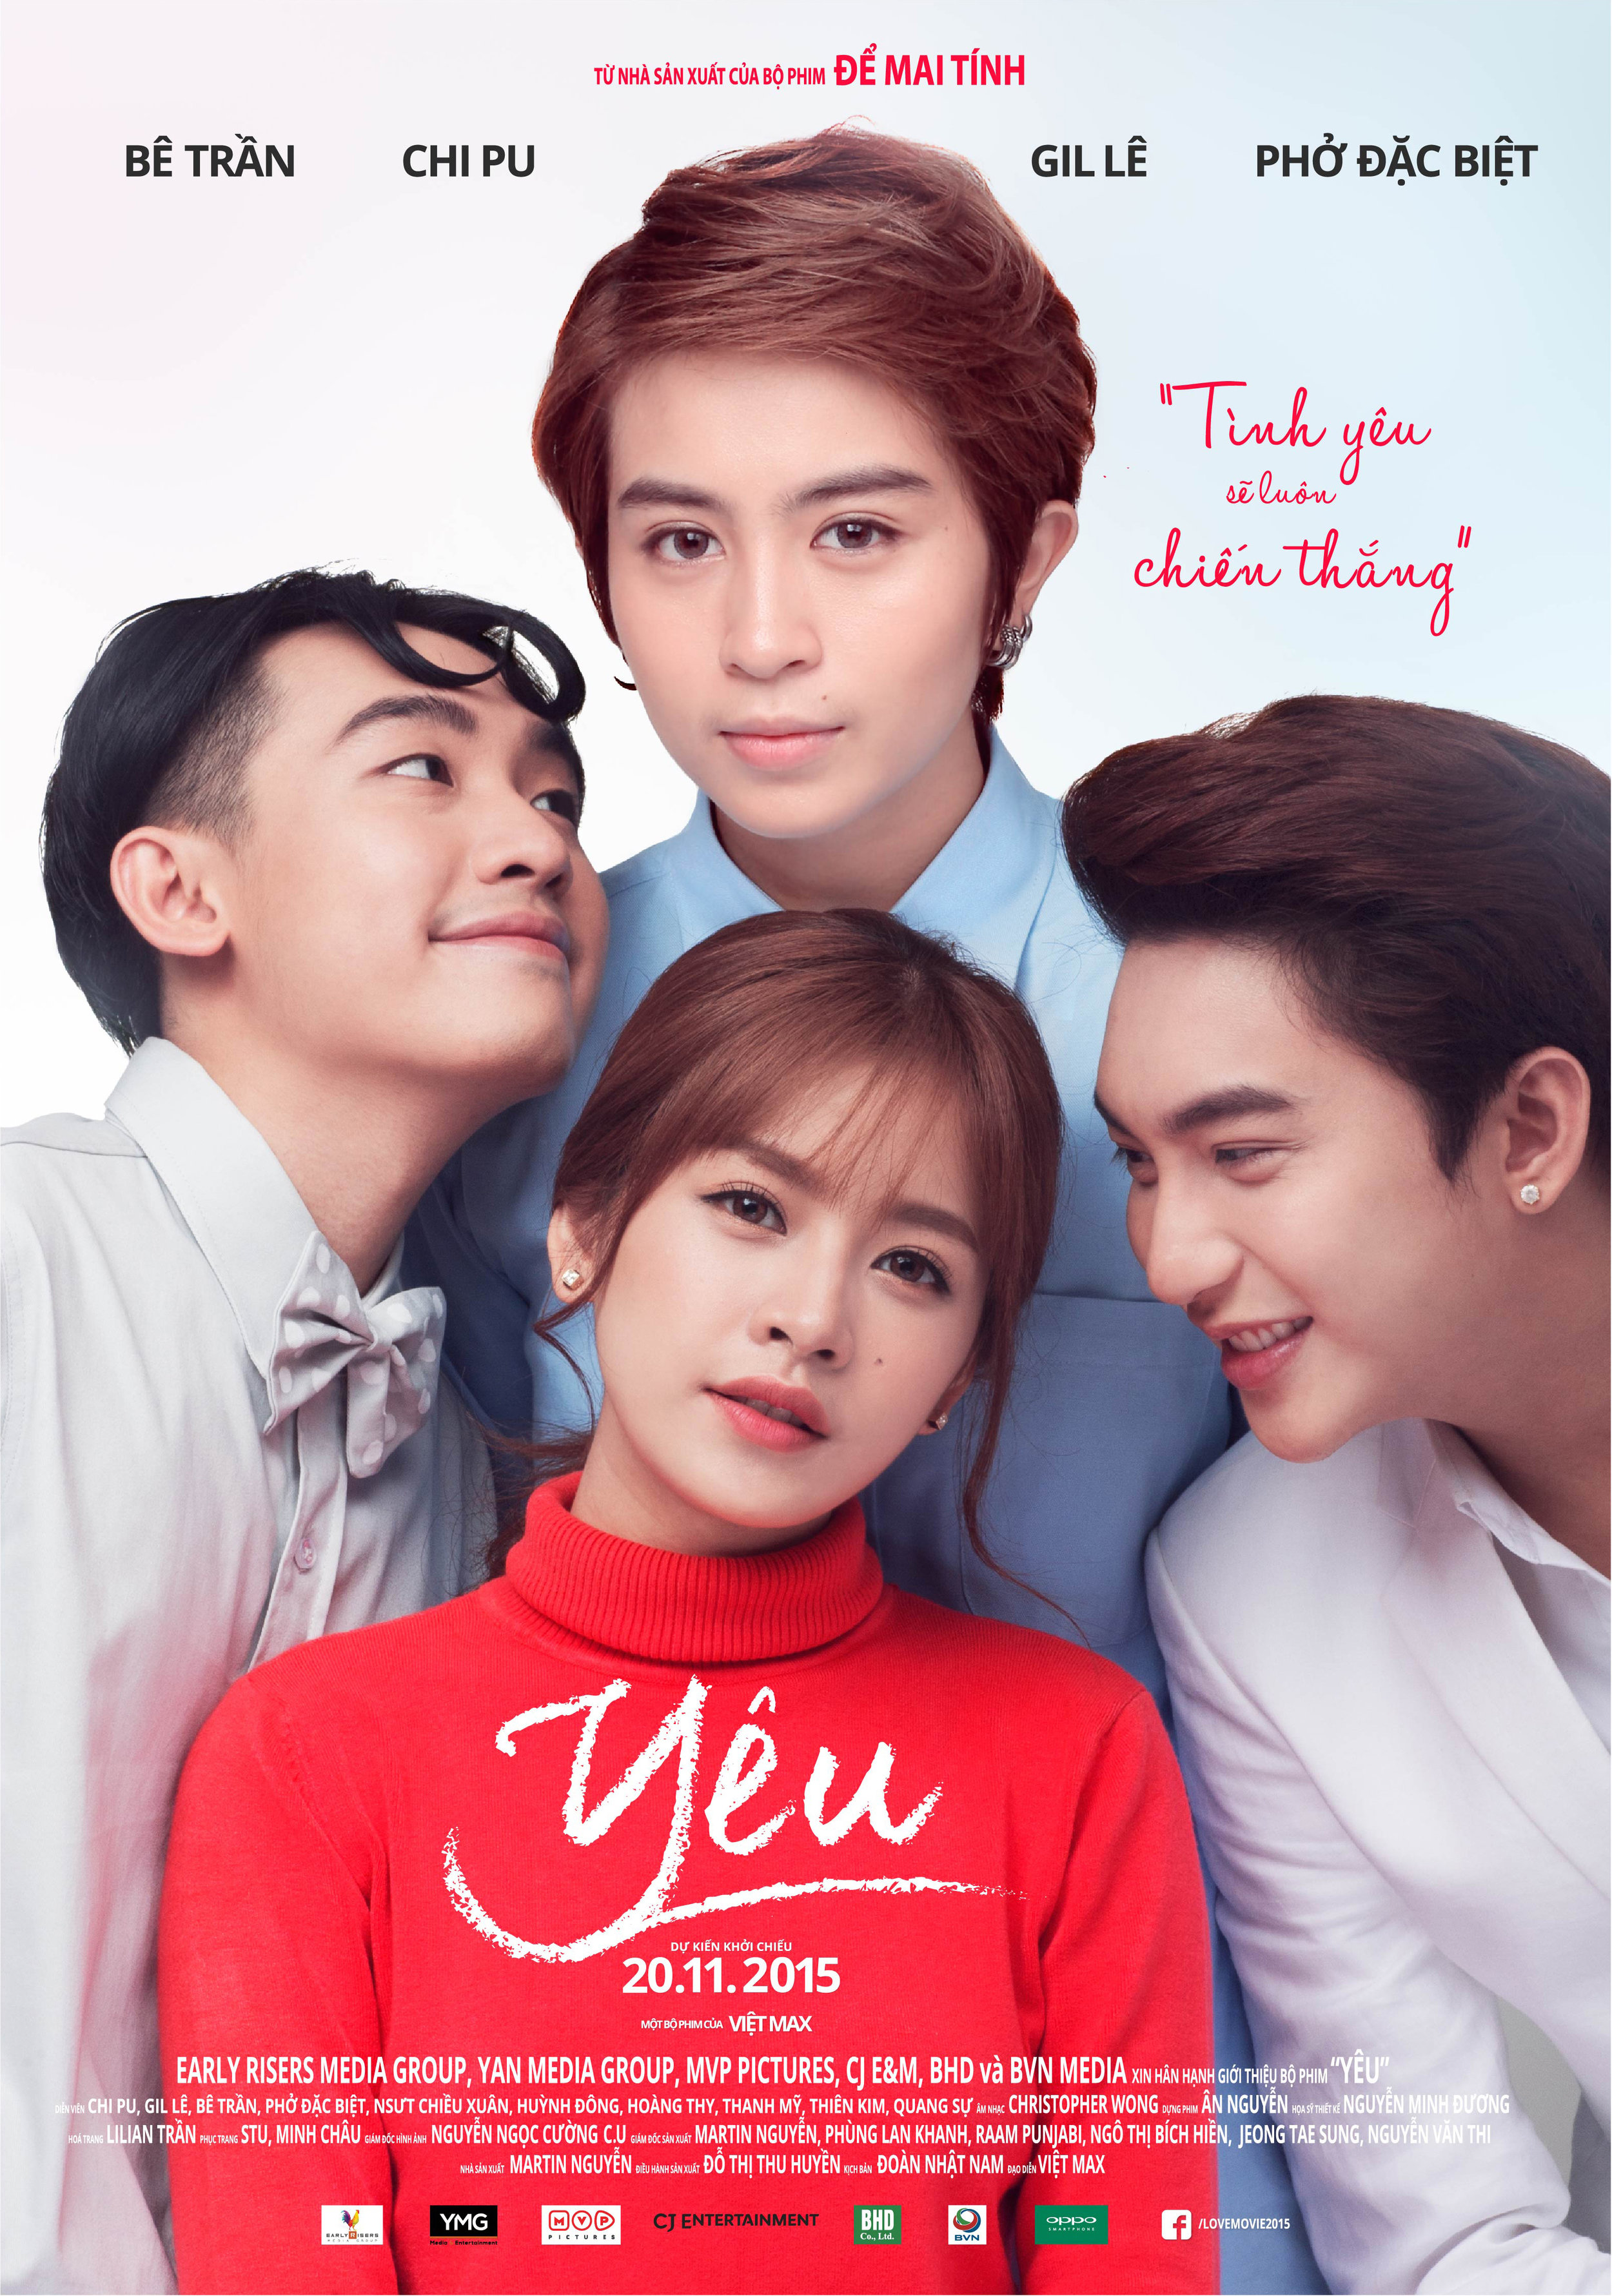 YEU - Poster size: 28 x 40 (inch)This project was to create to support advertising the release date of the movie YEU happened in Vietnam. In this project, I not only worked with the producer team of the movie but also worked with two members of my team at YMG corporate who are Alicia Billon and Maxk Nguyen.